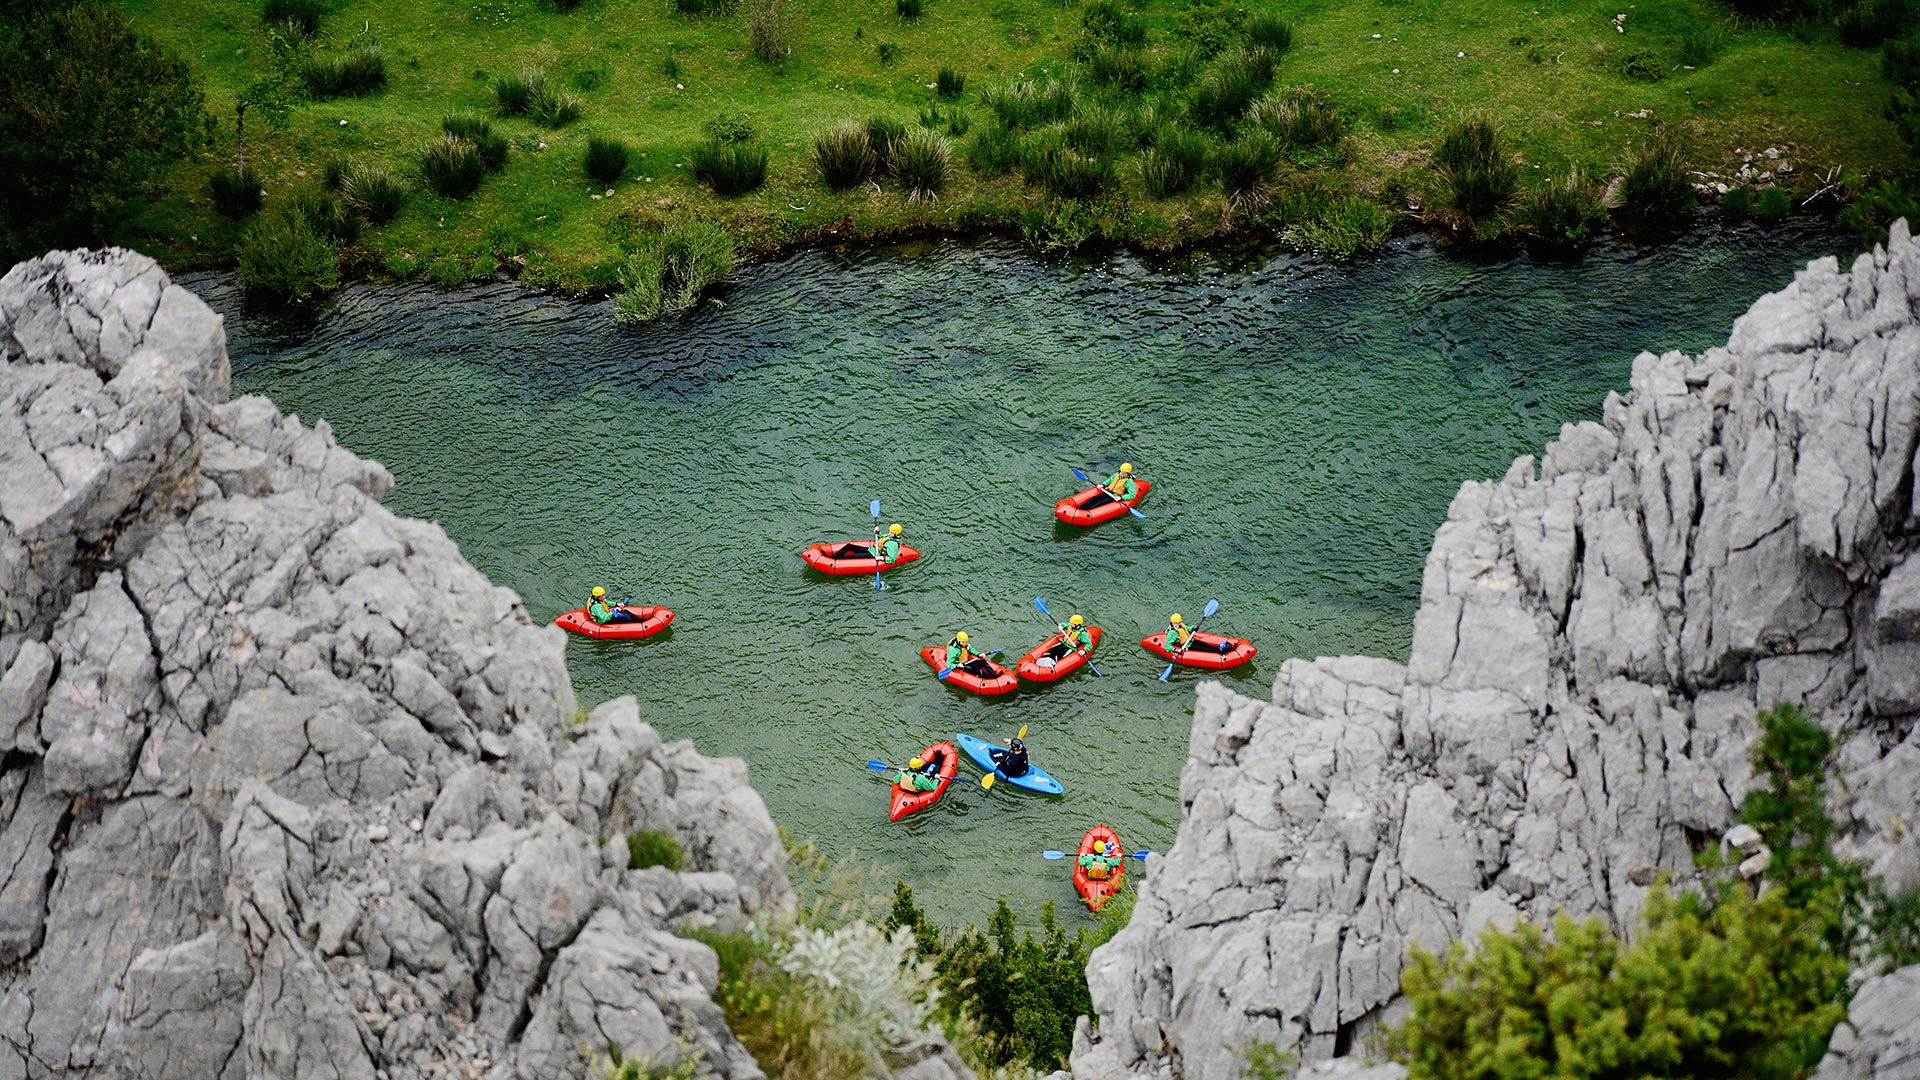 Zrmanja River Packrafting | Raftrek Adventure travel